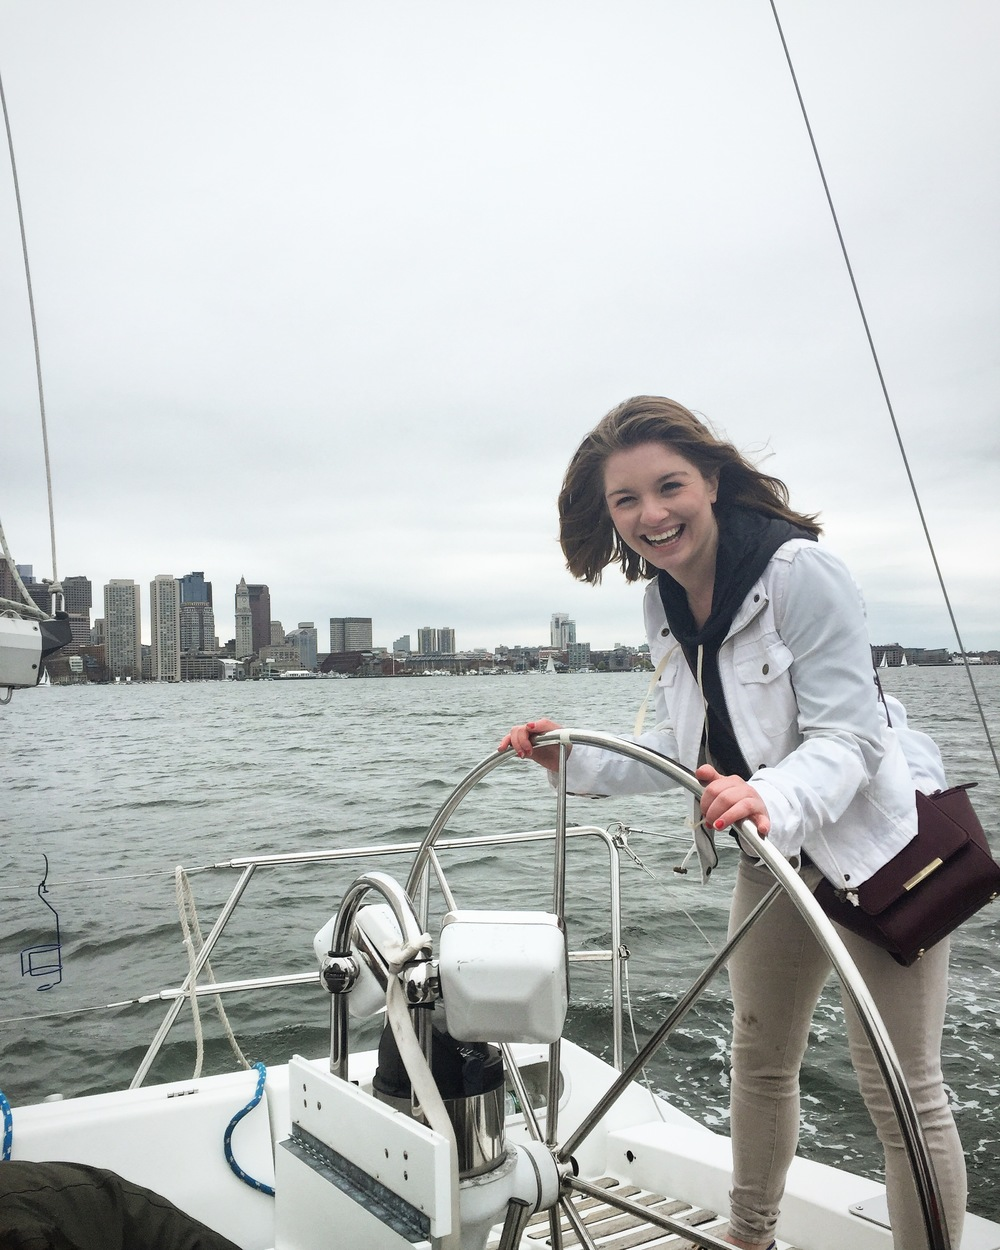 Me Trying to Sail